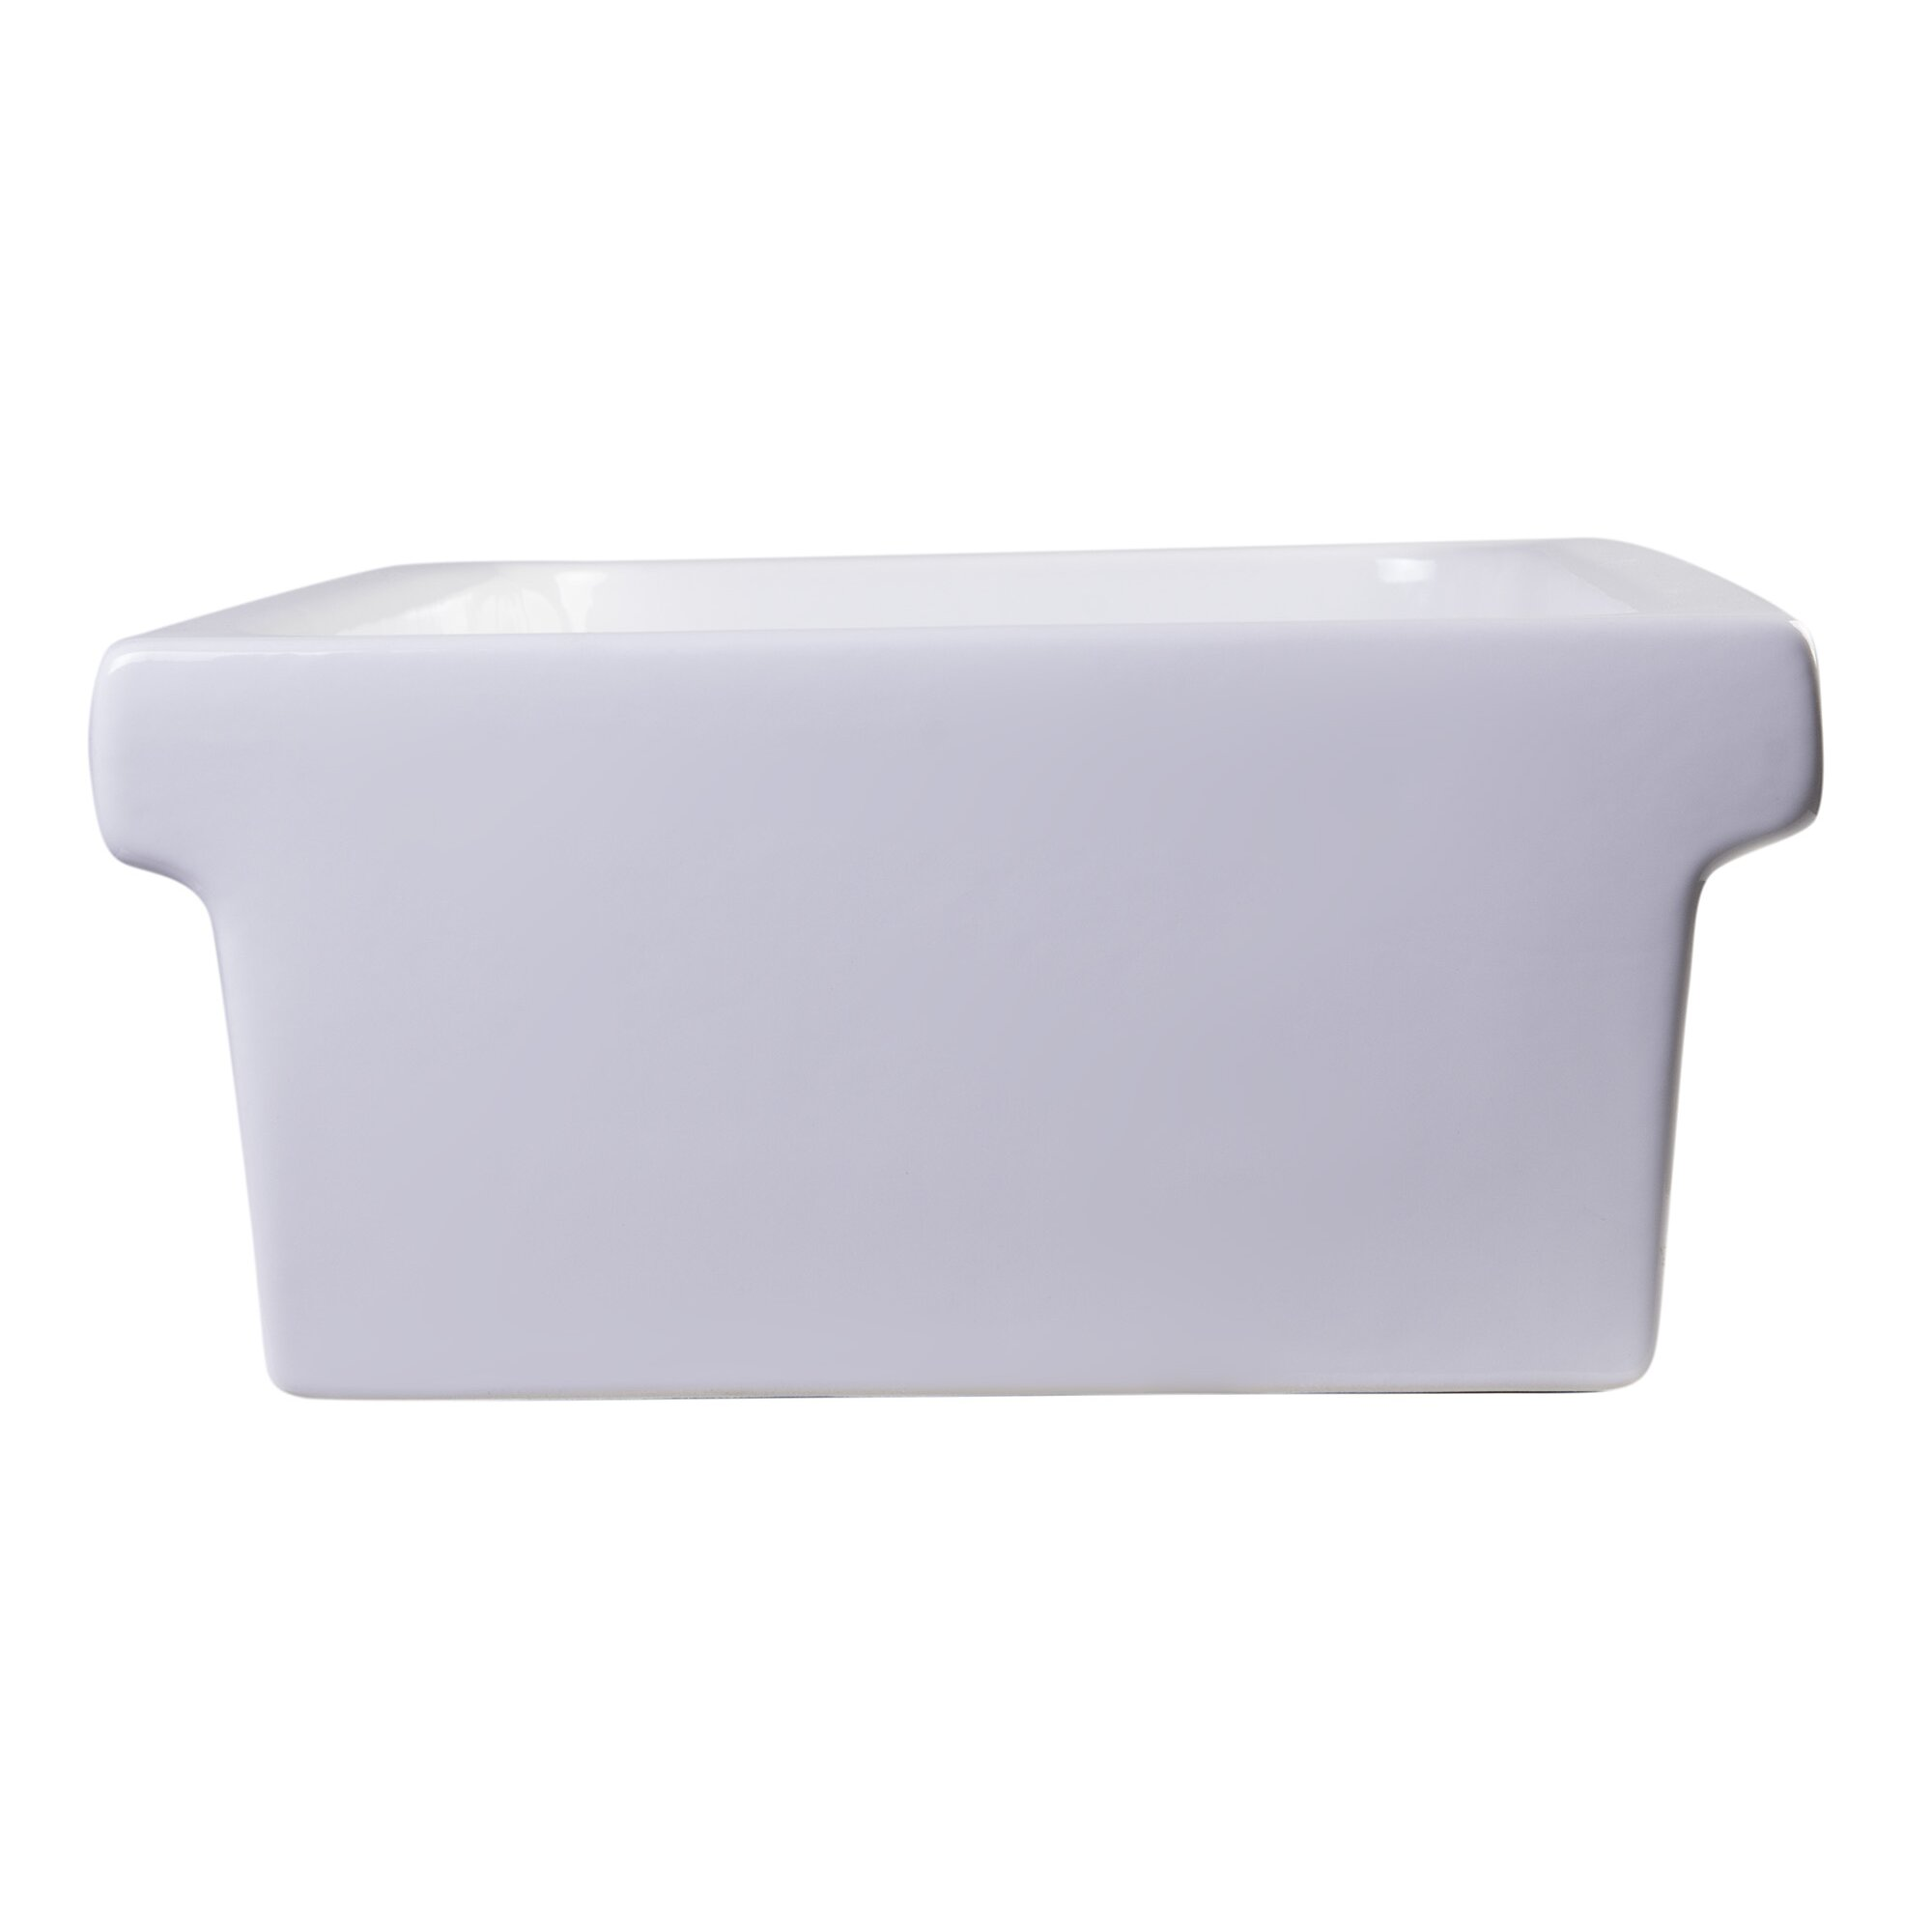 "Alfi Brand 35.5"" Above Mount Porcelain Bath Trough Sink"